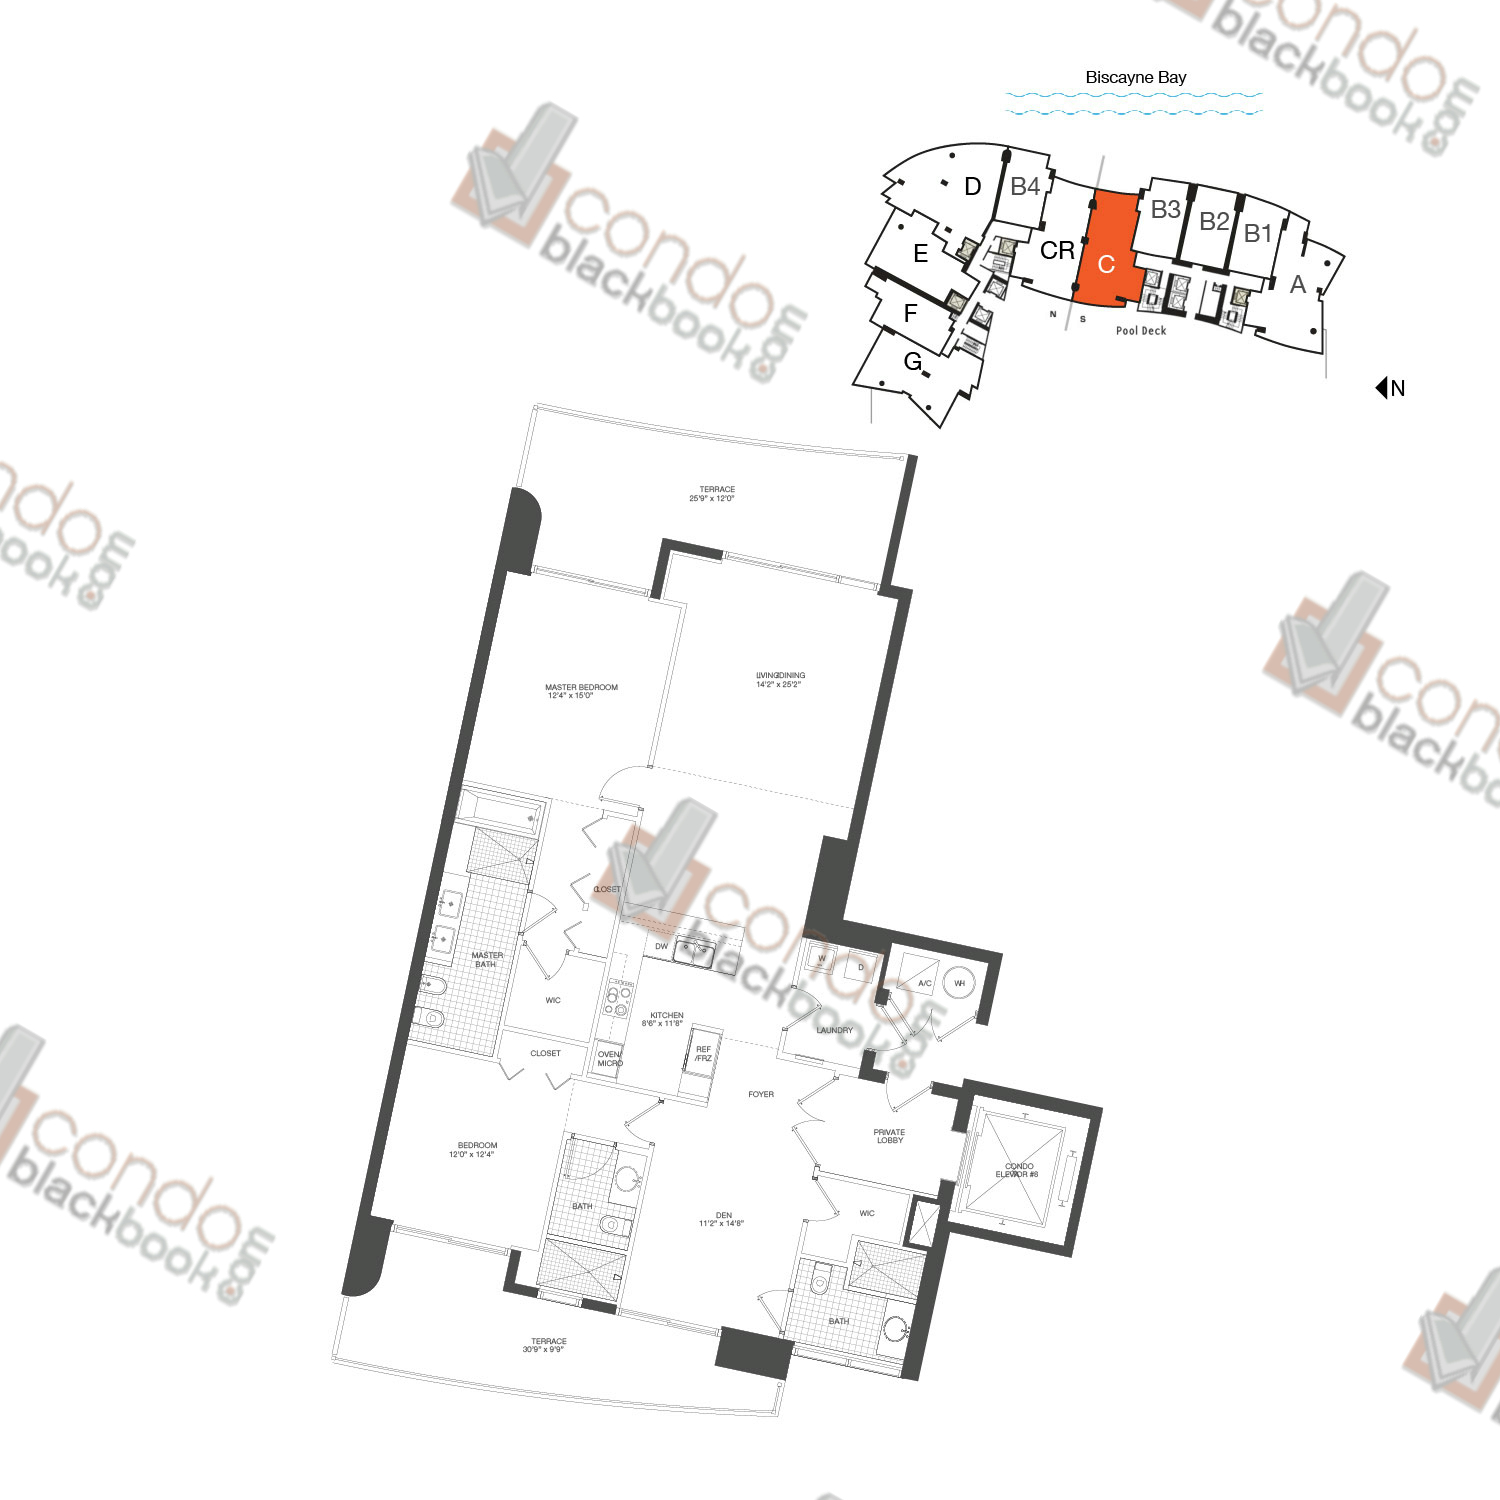 Floor plan for 900 Biscayne Bay Downtown Miami Miami, model Unit C, line 09, 2/3+DEN bedrooms, 1,579 sq ft